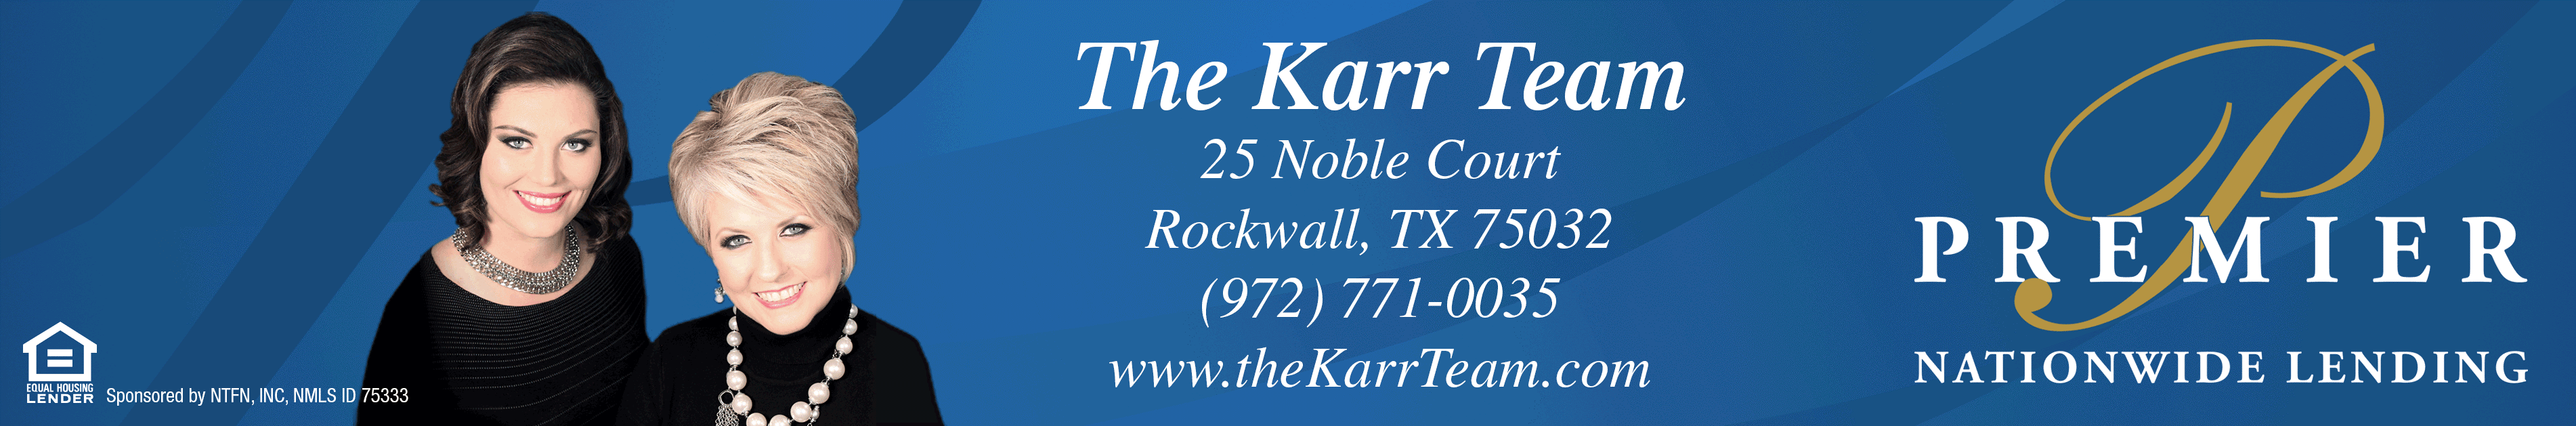 The Karr Team Premier Nationwide Lending Logo